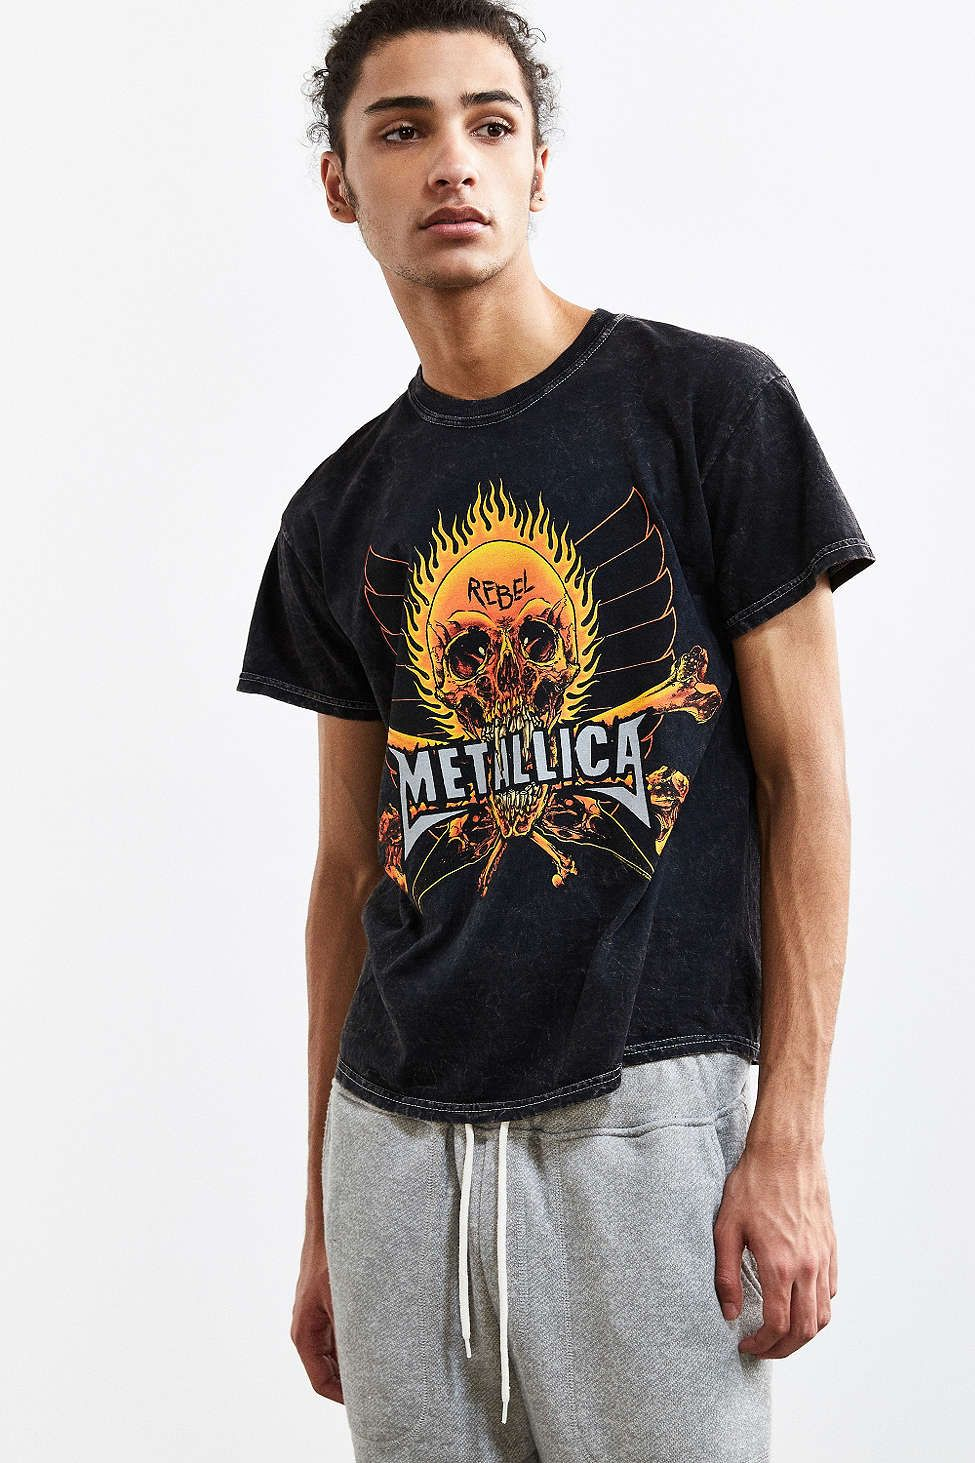 Black t shirt urban outfitters - Metallica Fire And Ice Tee